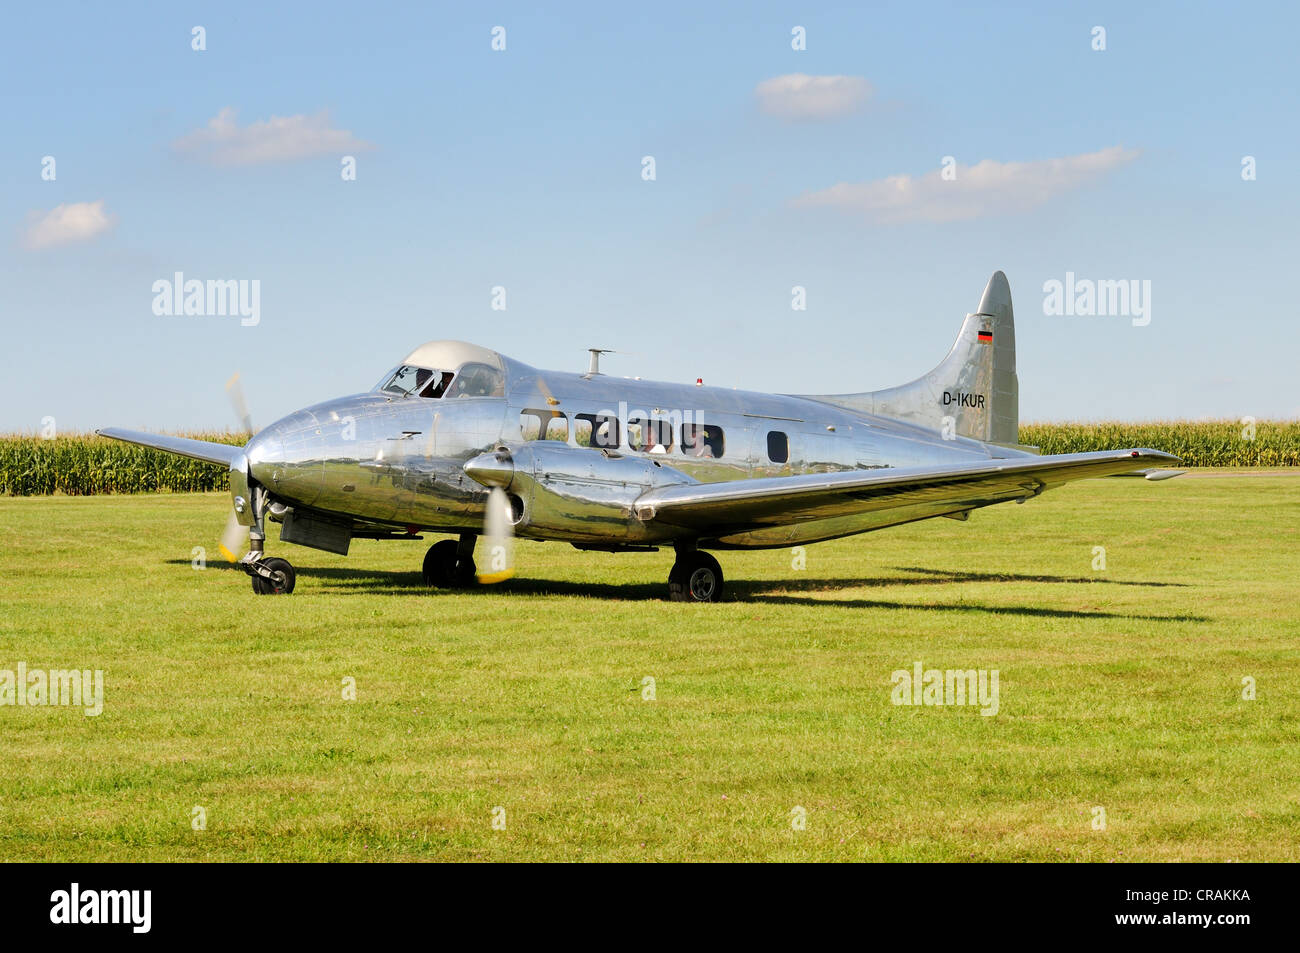 Passenger airliner, de Havilland DH.104 Dove, first flight in 1945, Europe's largest meeting of vintage aircraft - Stock Image